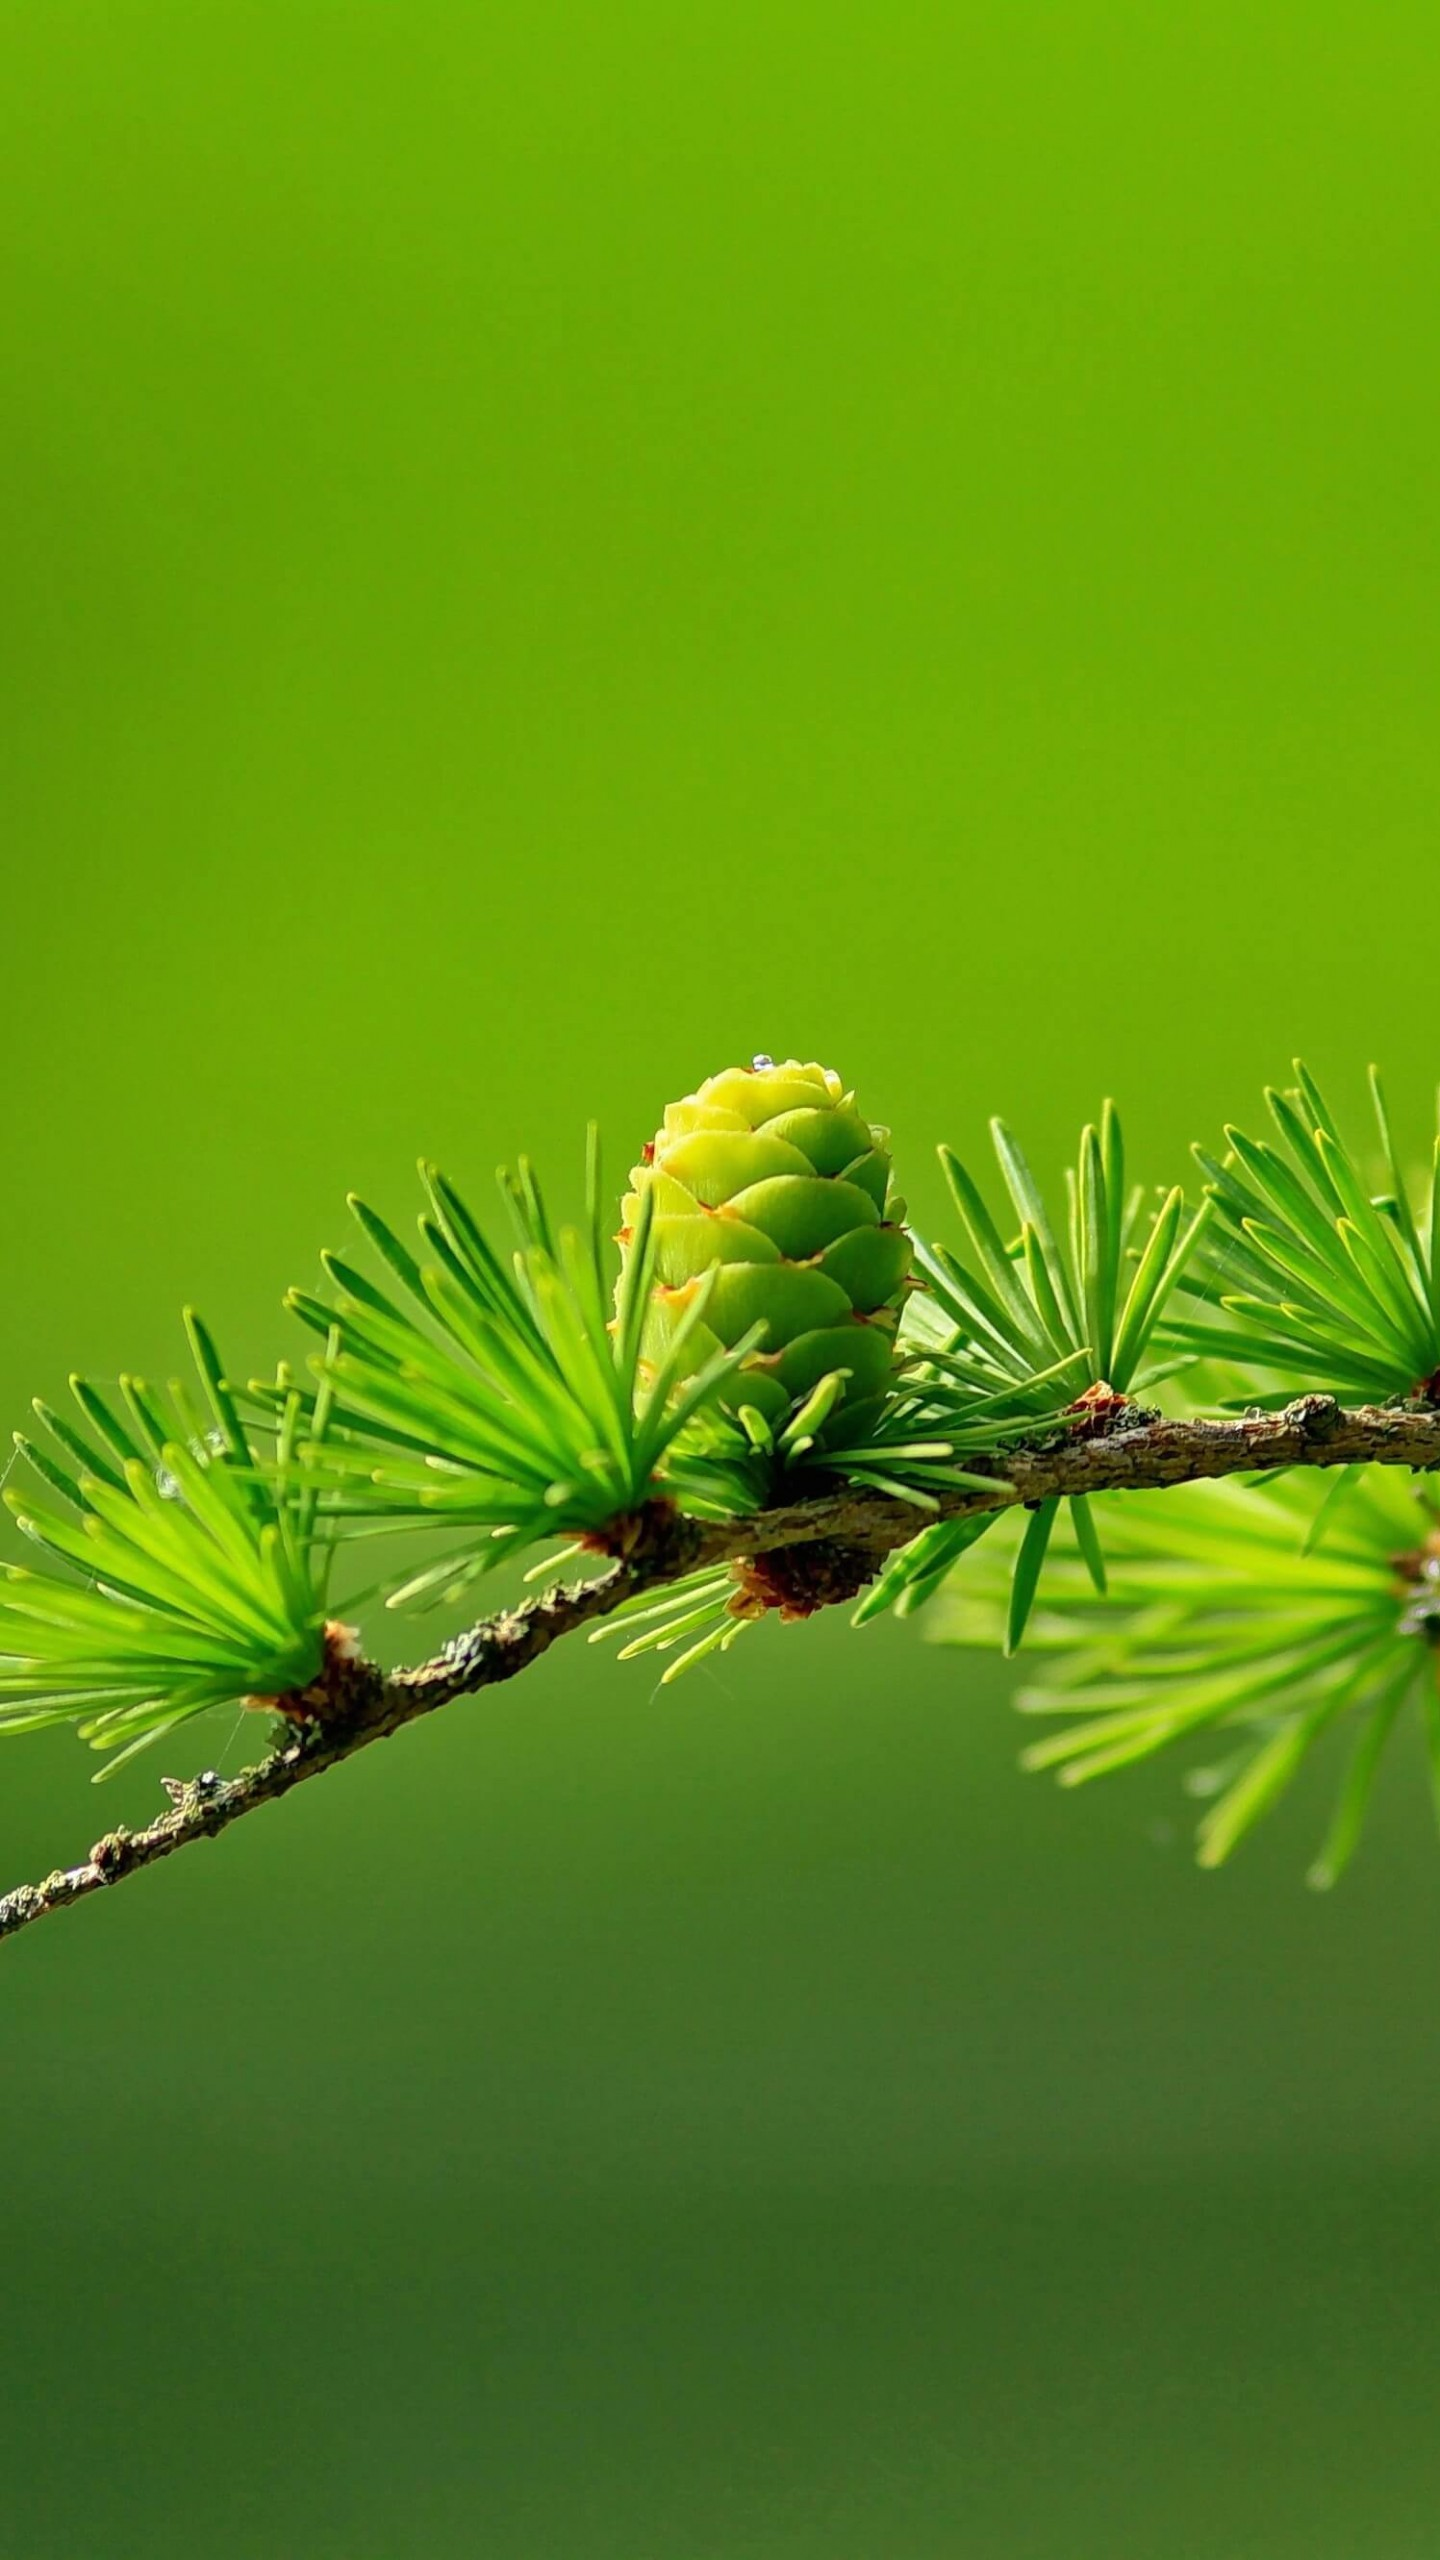 Branch of Pine Tree Wallpaper for LG G3